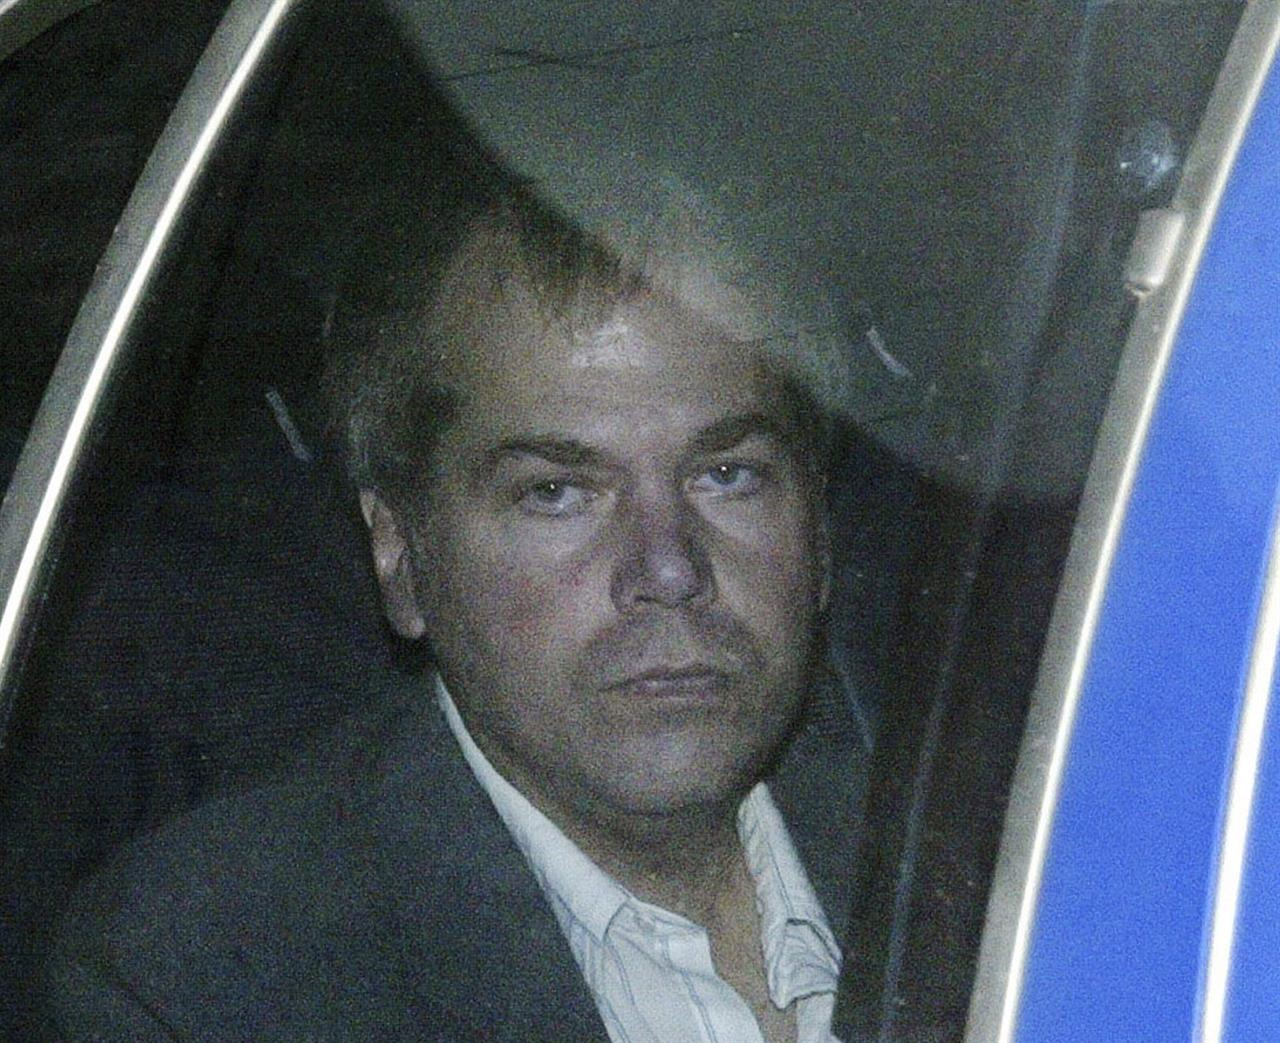 Restrictions may be loosened even further for John Hinckley